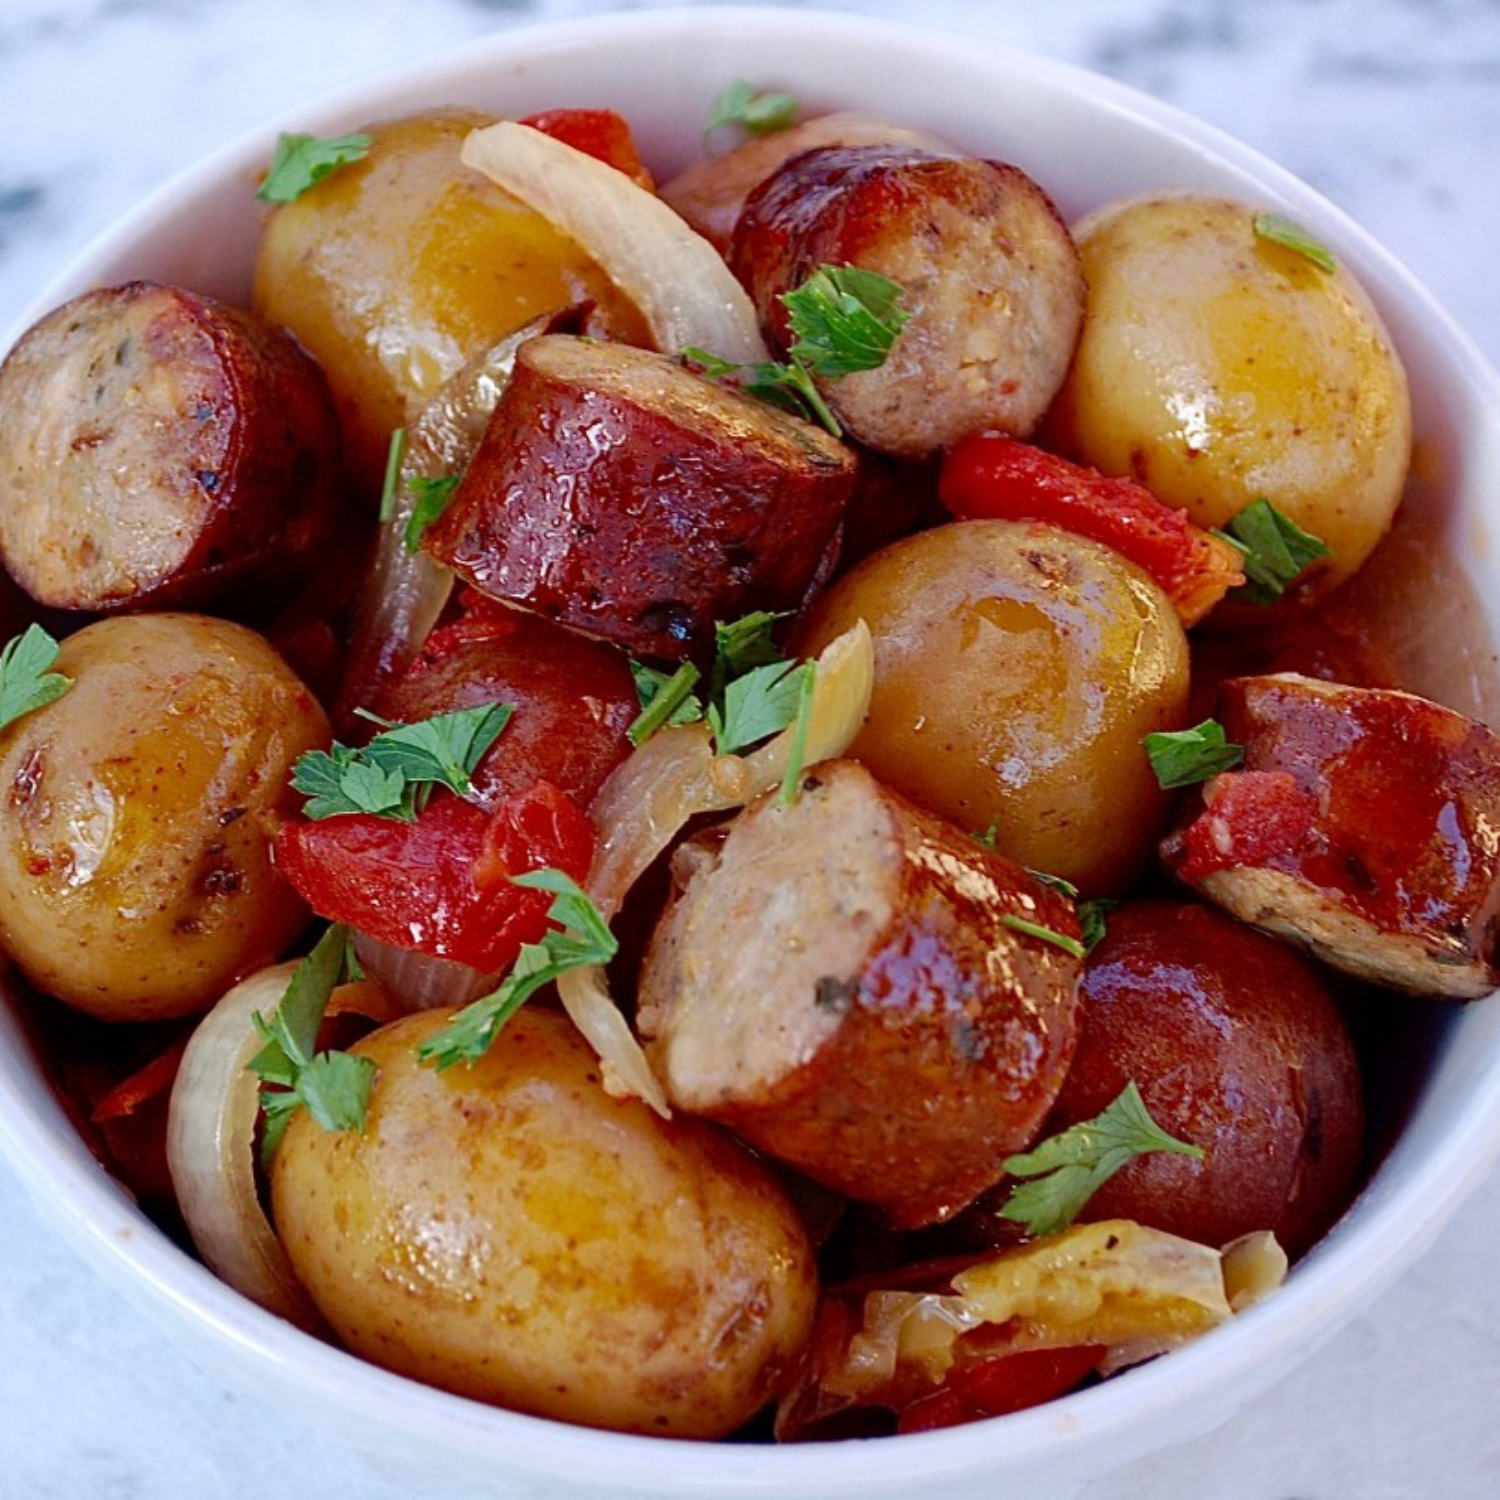 Slow Cooker Sausage and Potatoes - We couldn't help but add a slow cooker recipe to our list! With simple ingredients, this recipe is quick, healthy and bound to please any picky eater! Toss the ingredients together in the pot, and sit back and relax while it does the rest of the work!Get the recipe>>